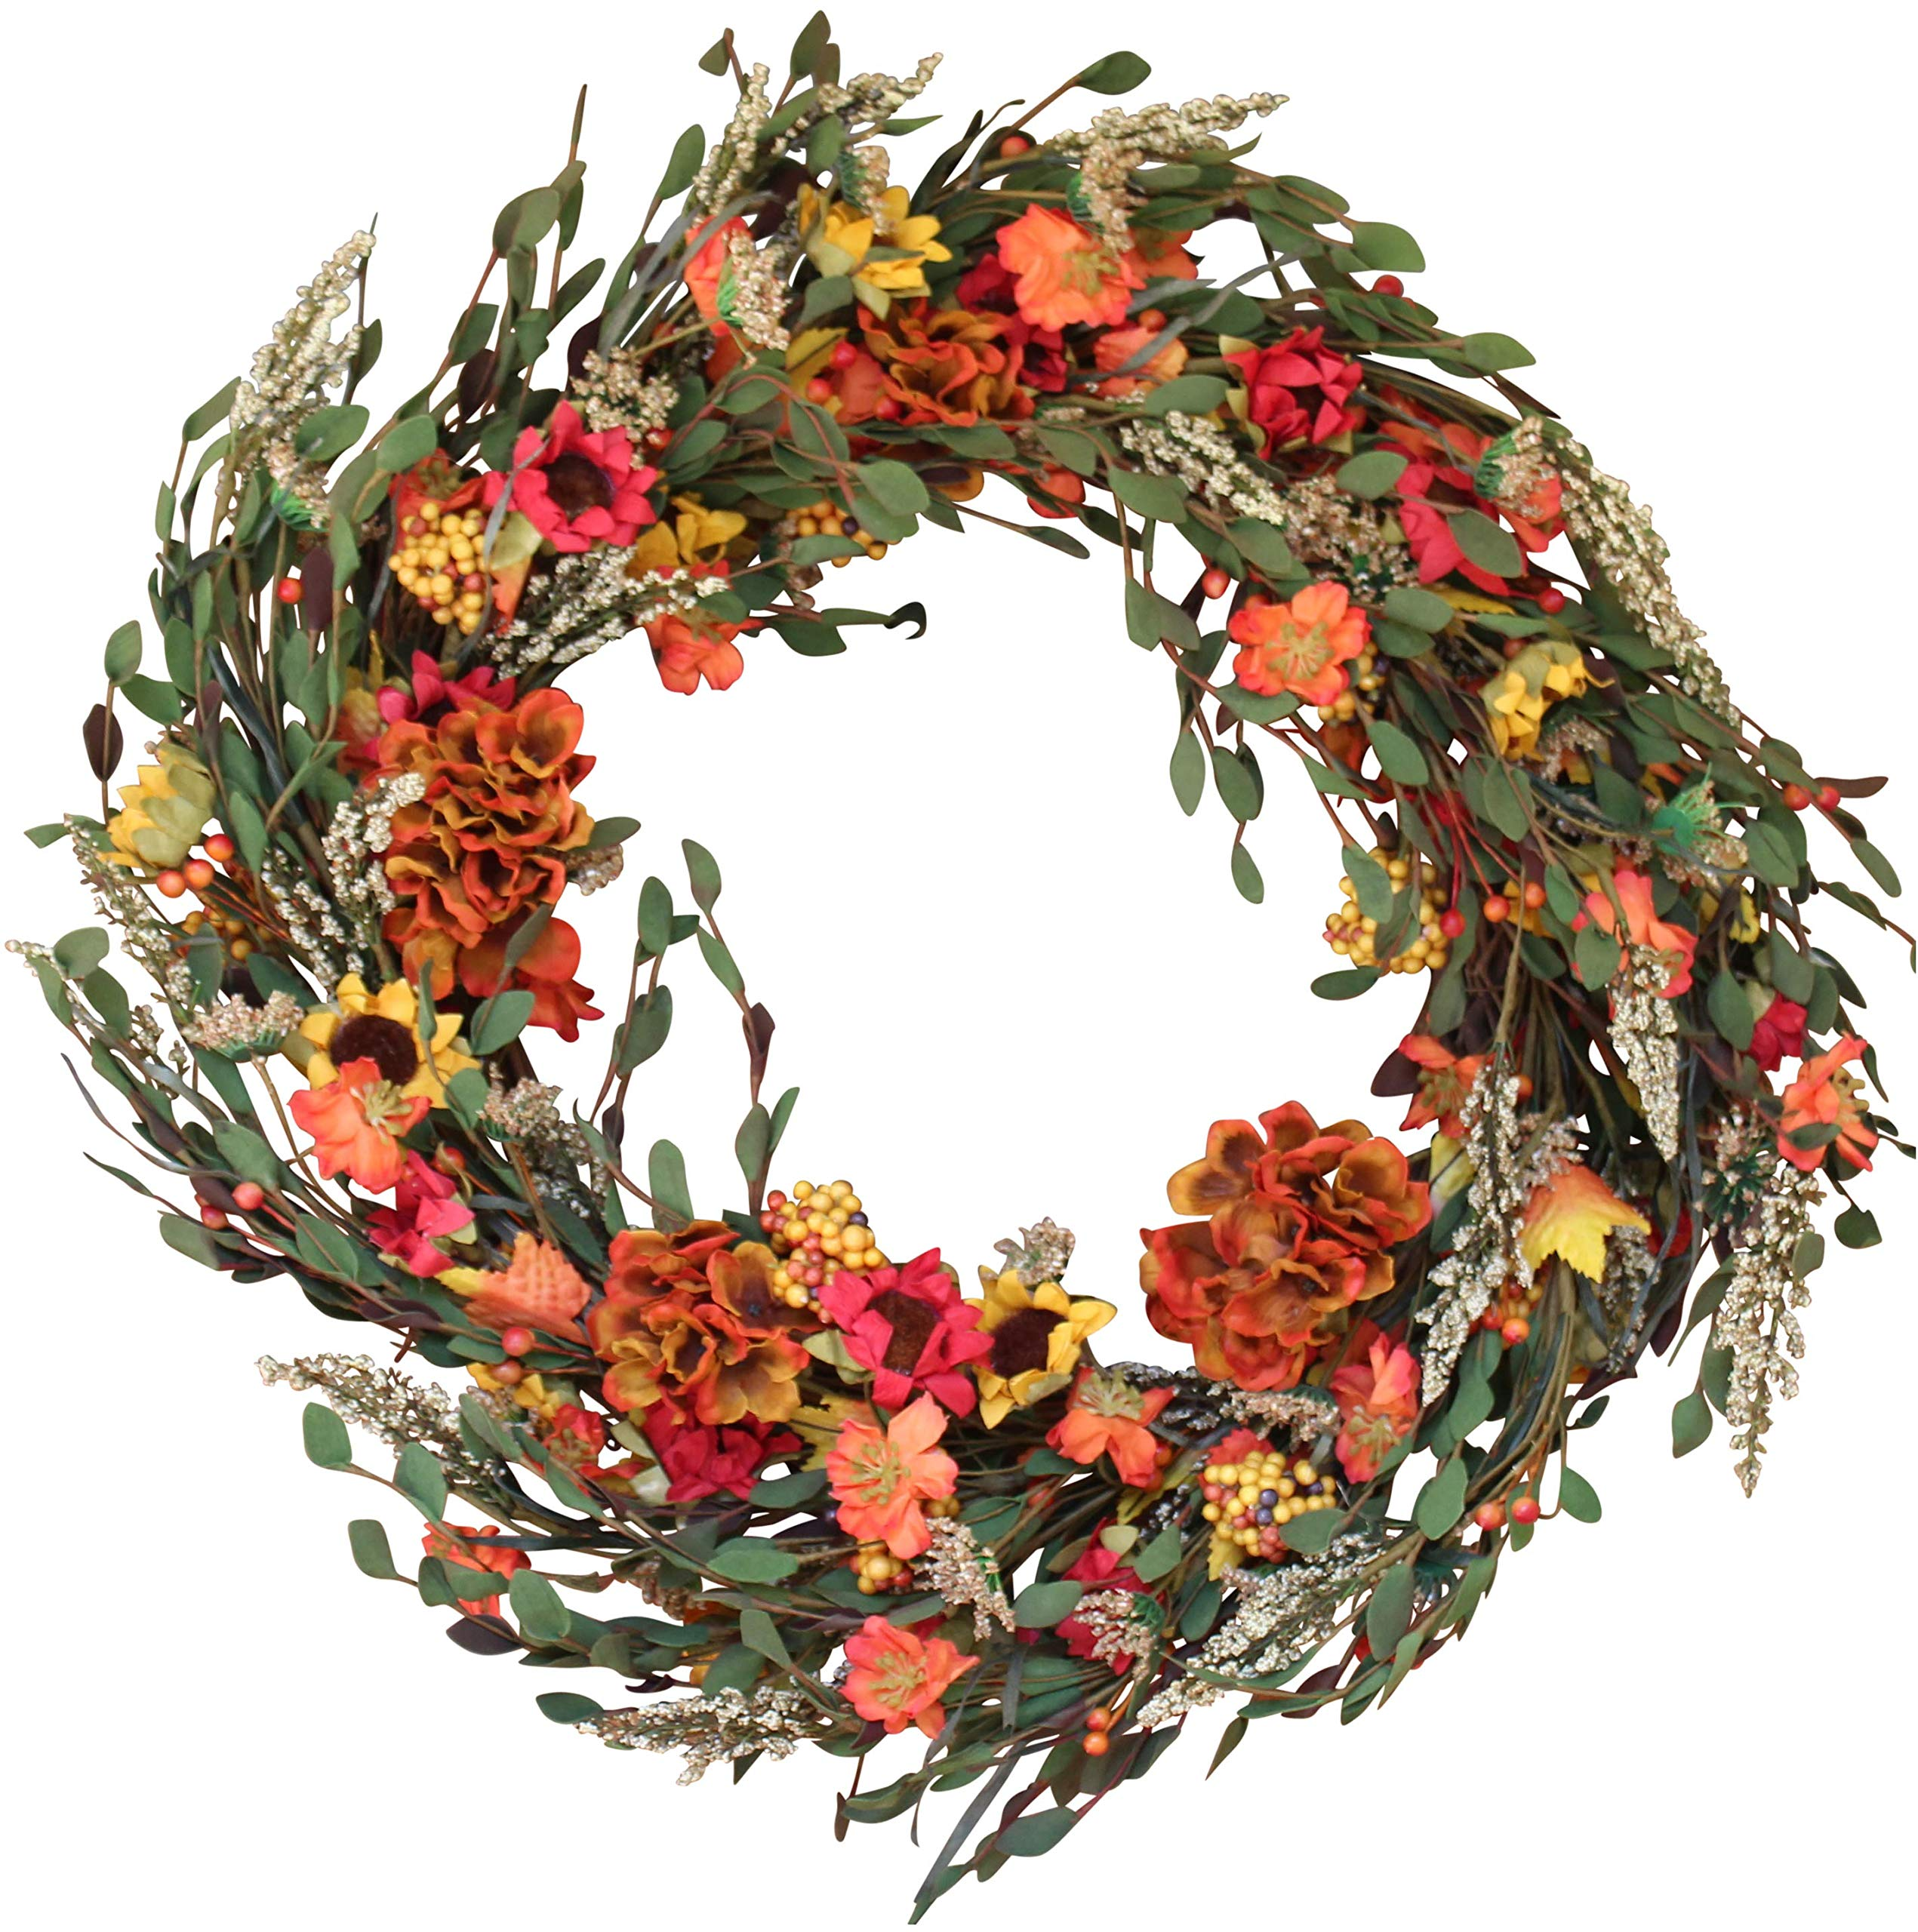 The Wreath Depot Nashua Blossom Fall Front Door Wreath, 22 Inches, Beautiful White Gift Box Included by The Wreath Depot